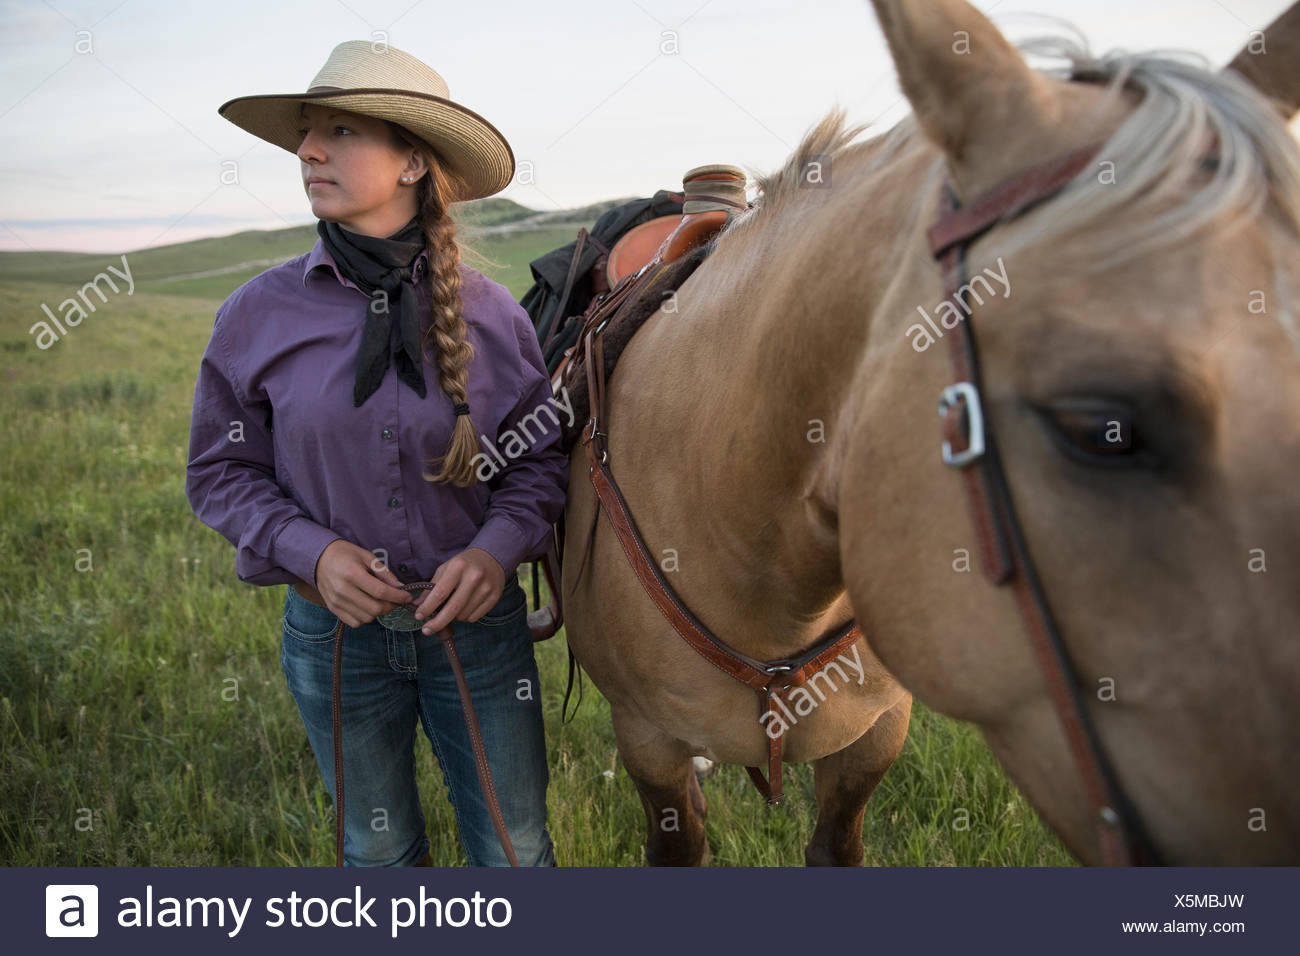 Female rancher with horse looking away in field - Stock Image